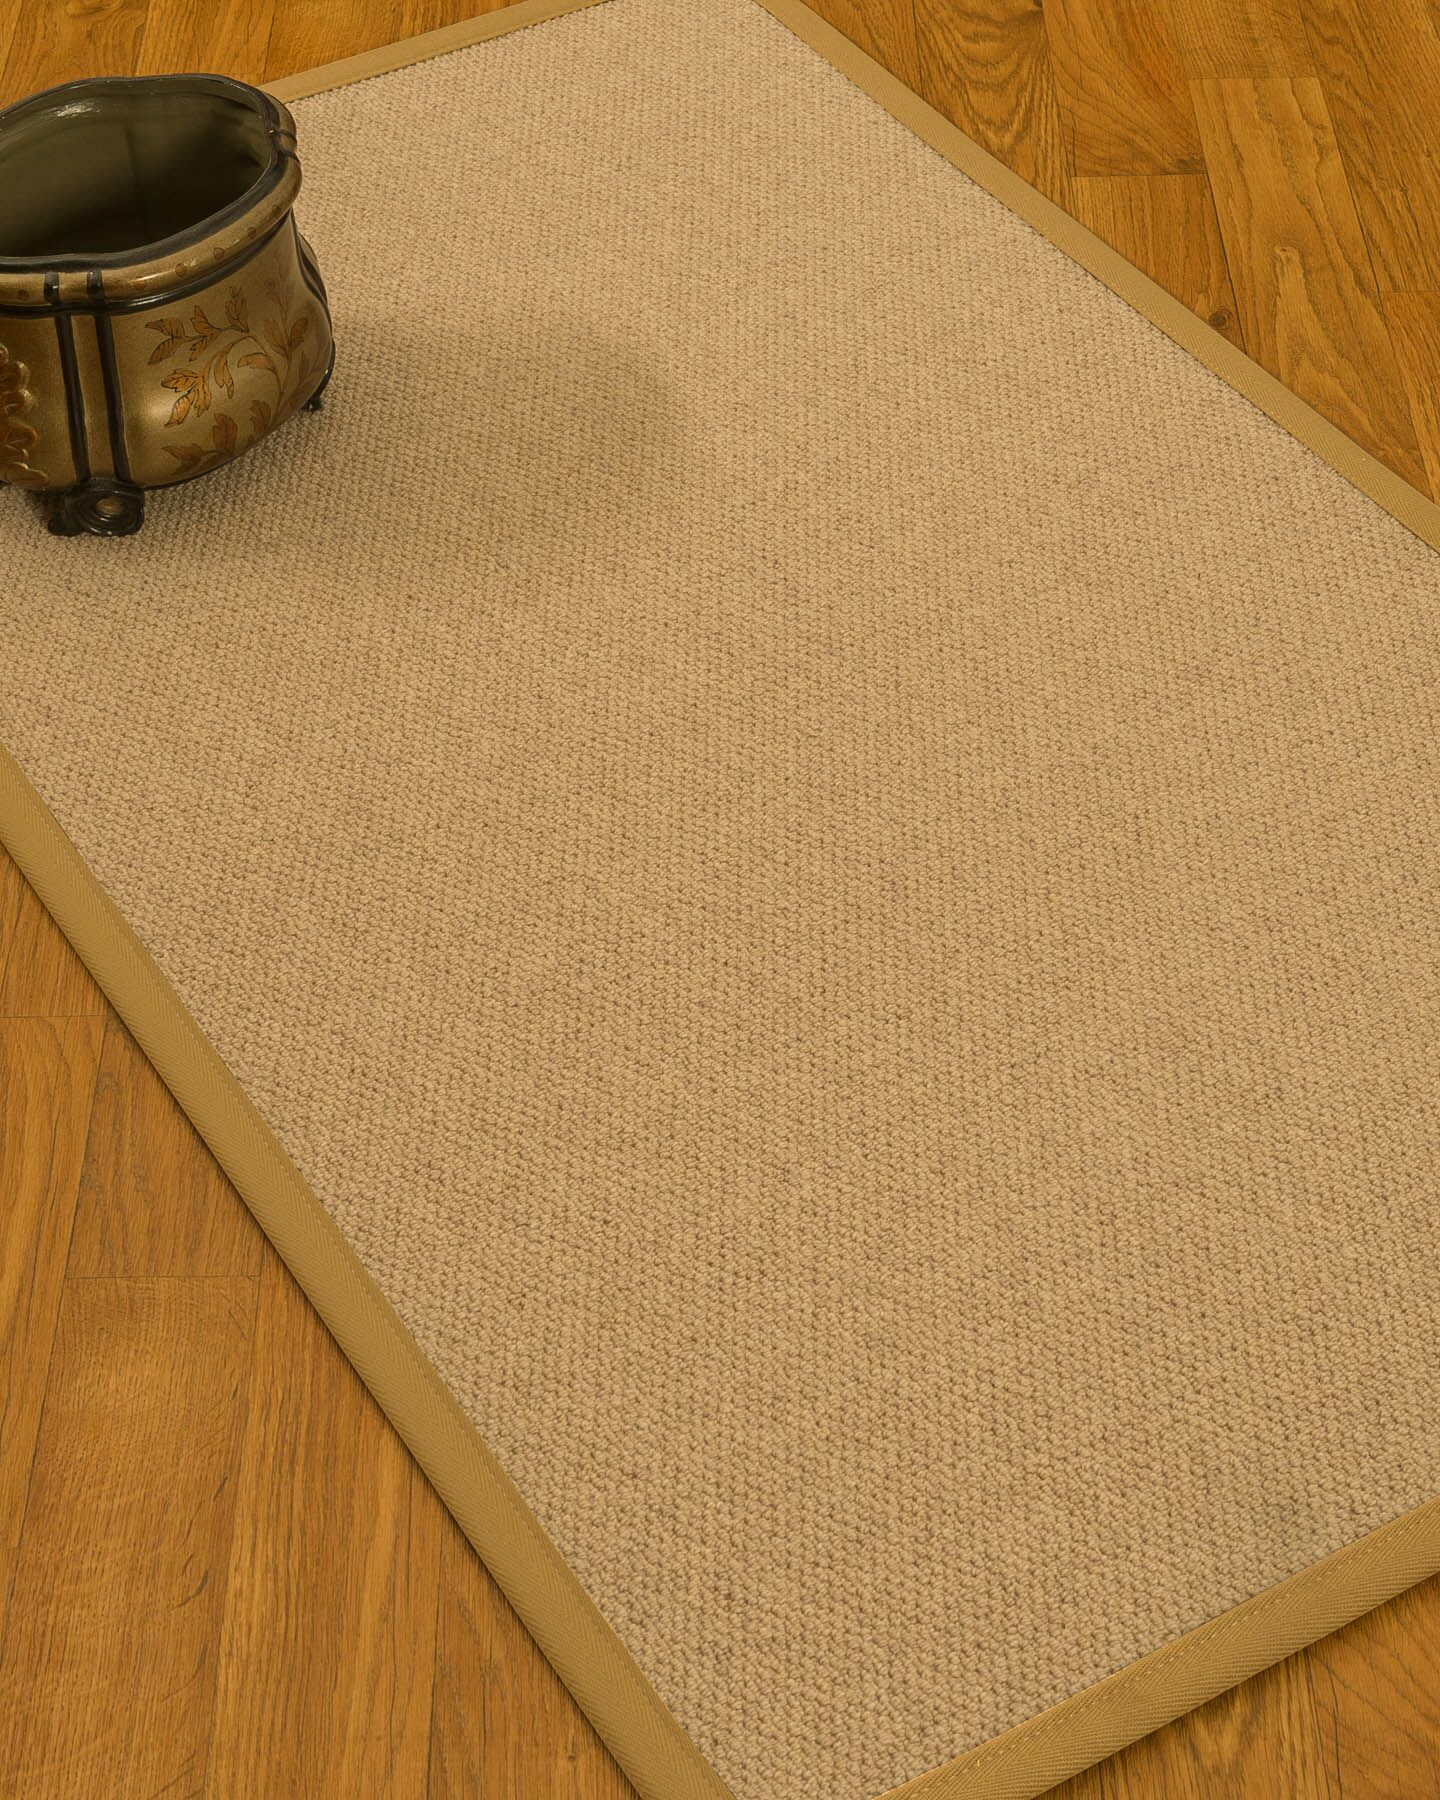 Chavira Border Hand-Woven Wool Beige/Sage Area Rug Rug Size: Rectangle 8' x 10', Rug Pad Included: Yes